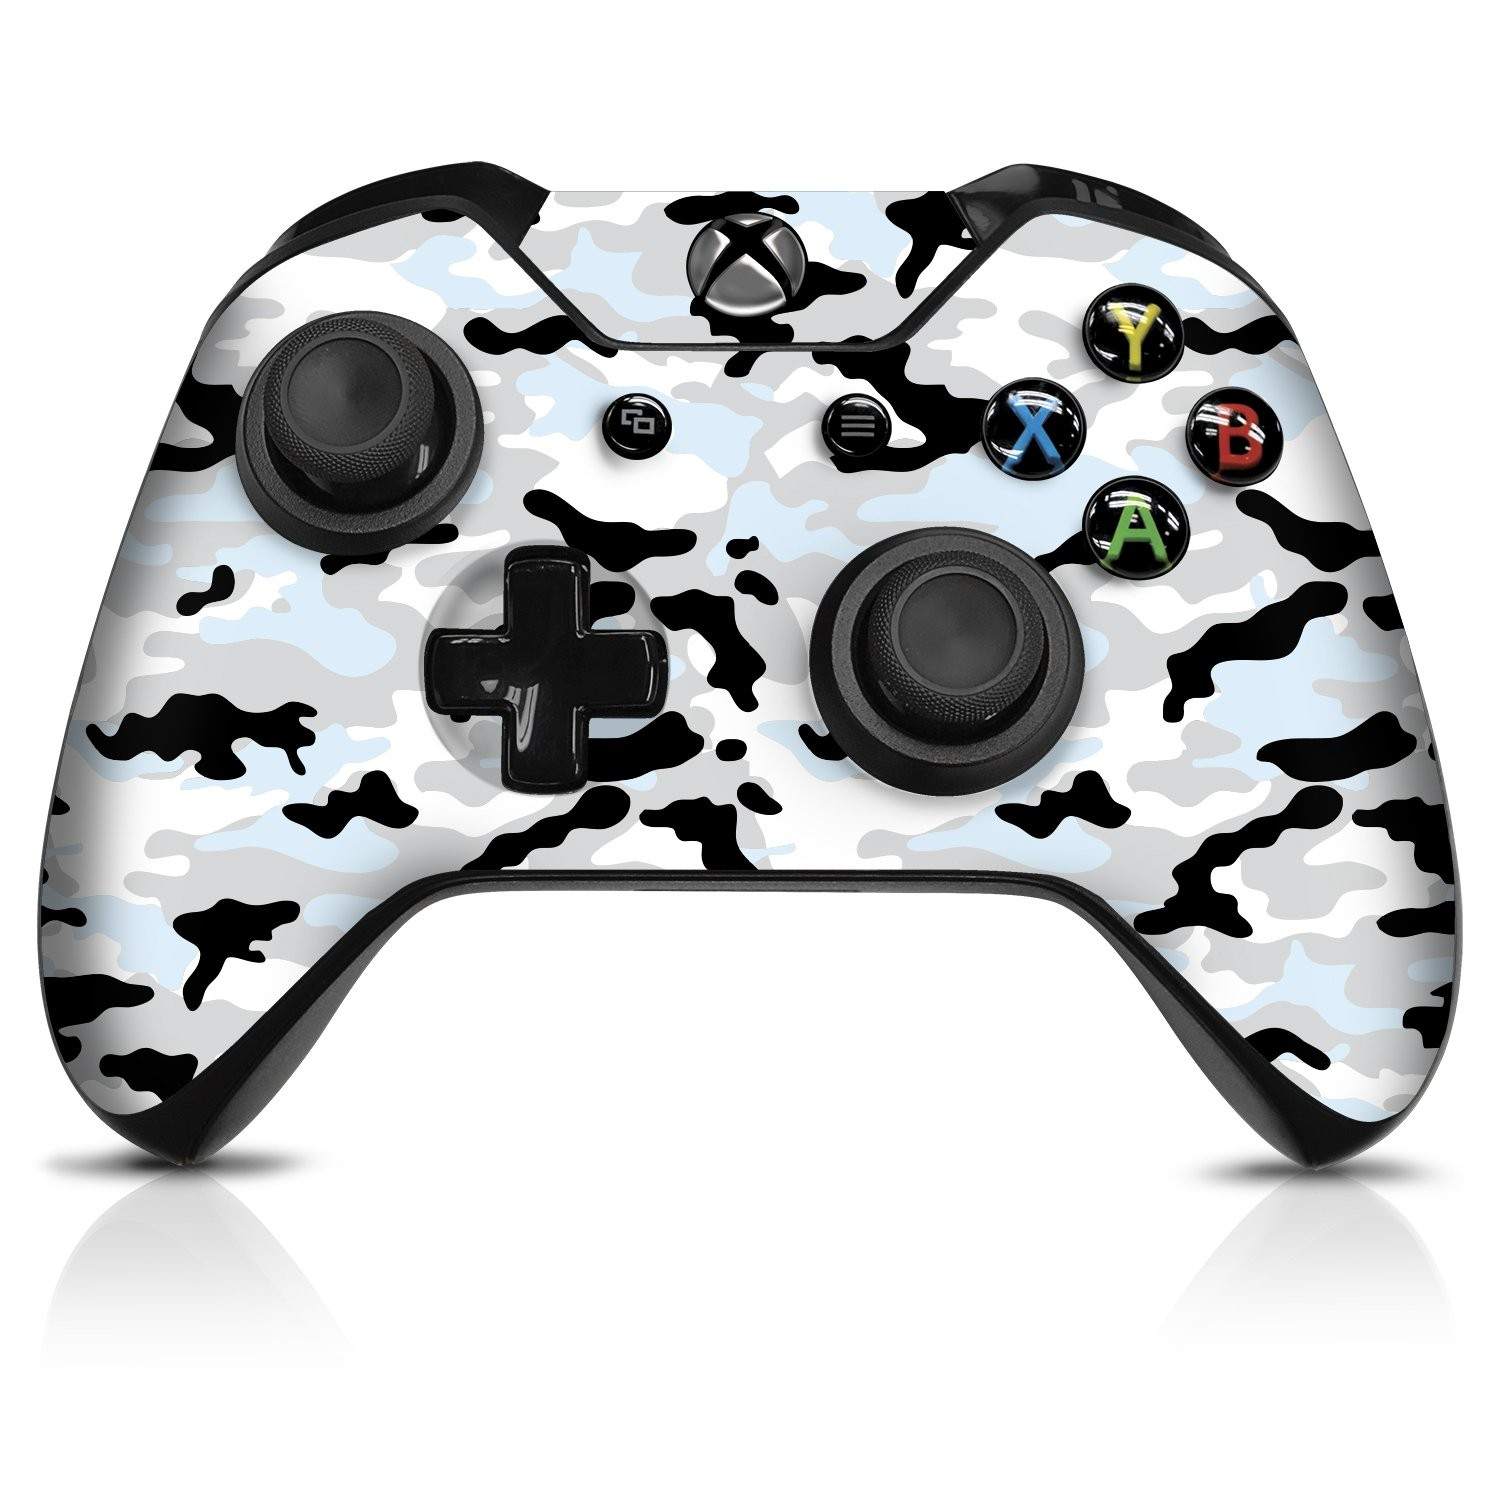 Seal Camo  Xbox One Controller Skin - Officially Licensed by Xbox - Controller Gear